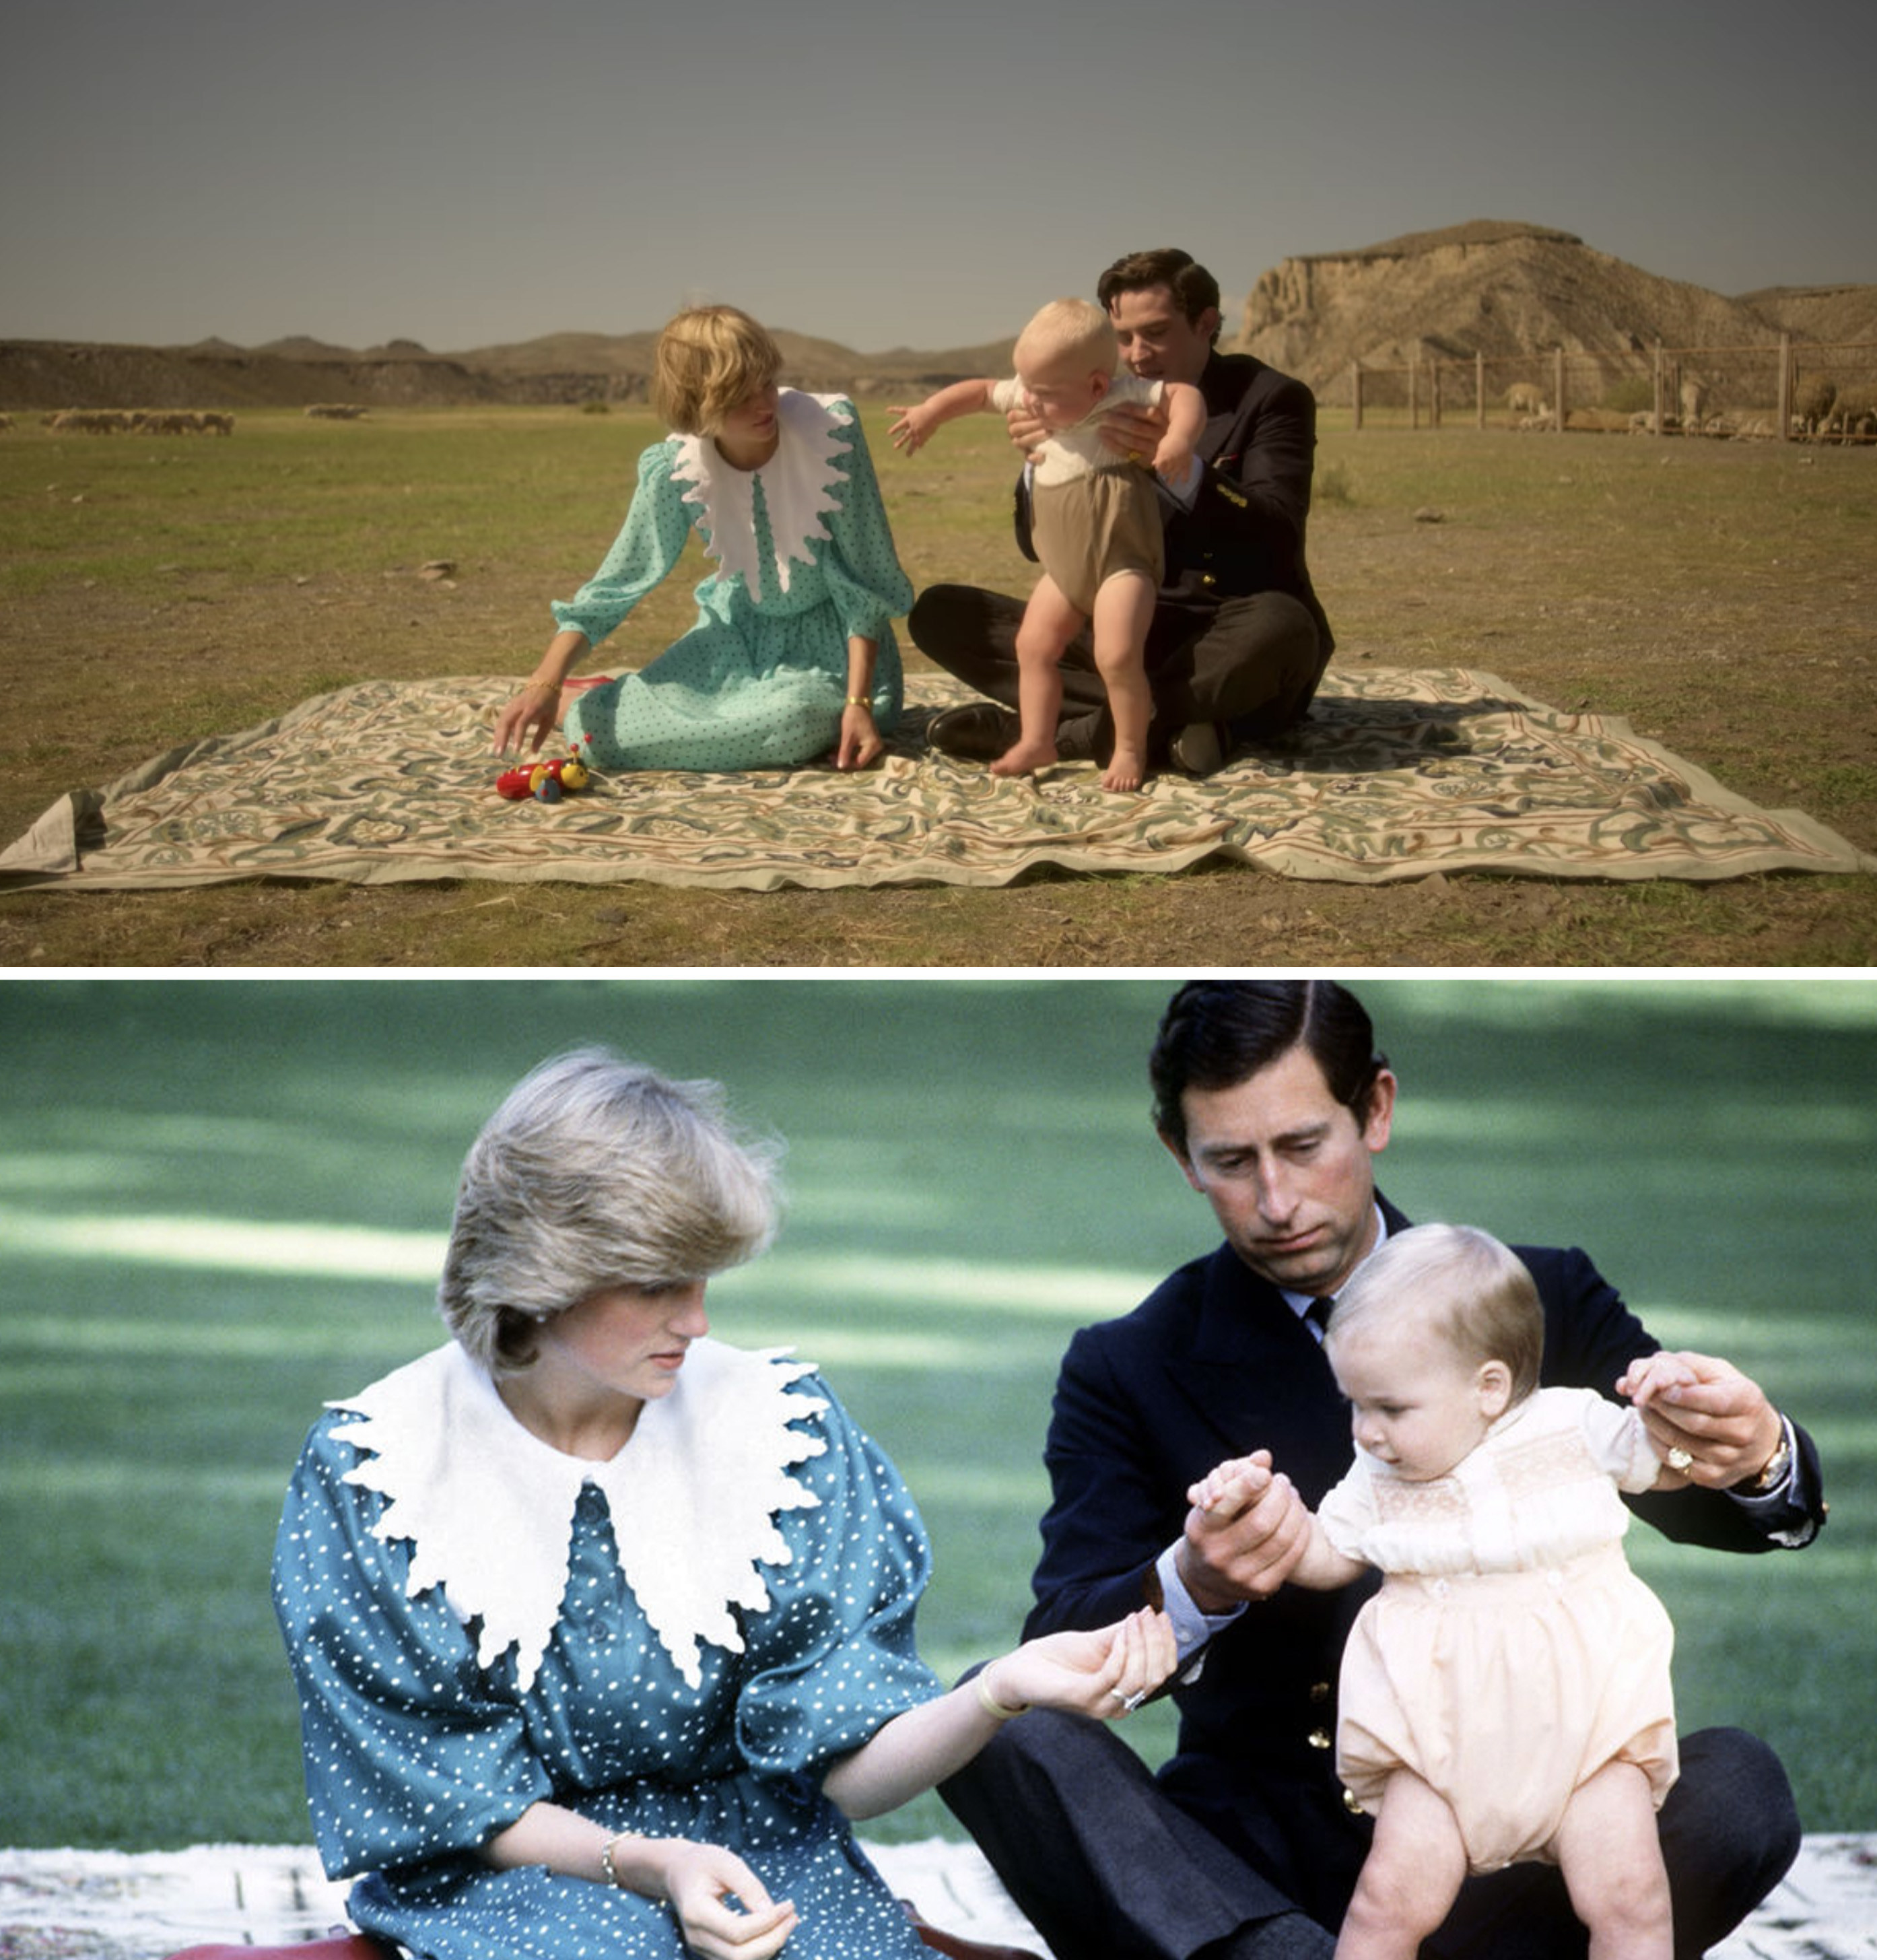 Prince Charles and Princess Diana sit on a blanket as they play with Prince William